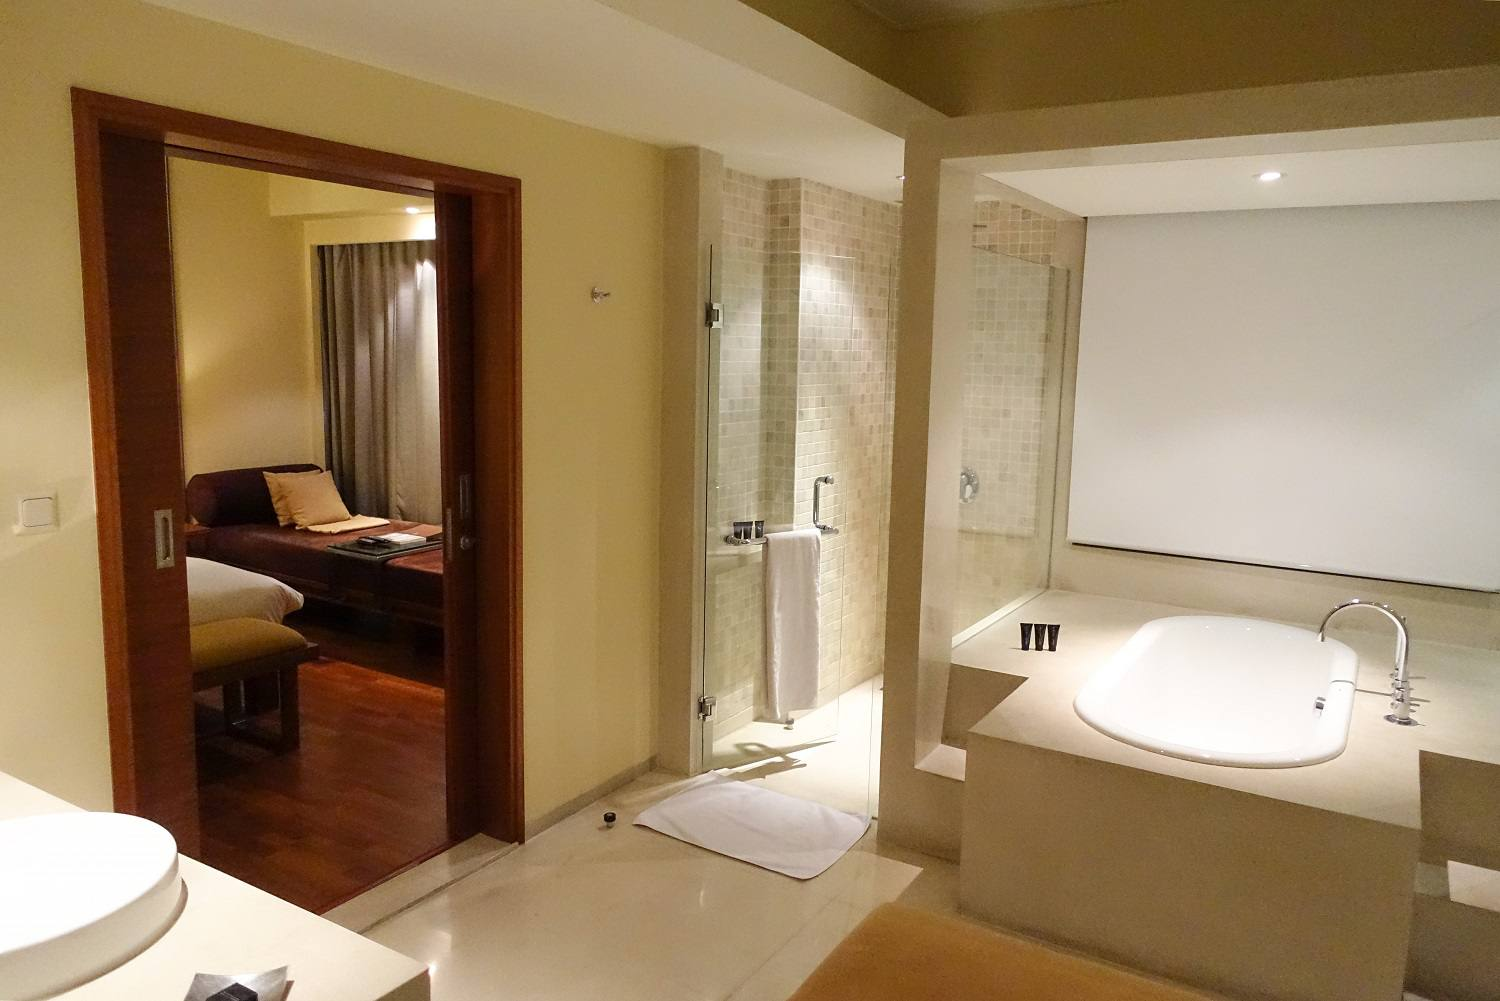 Review of Alila Jakarta Hotel, Indonesia